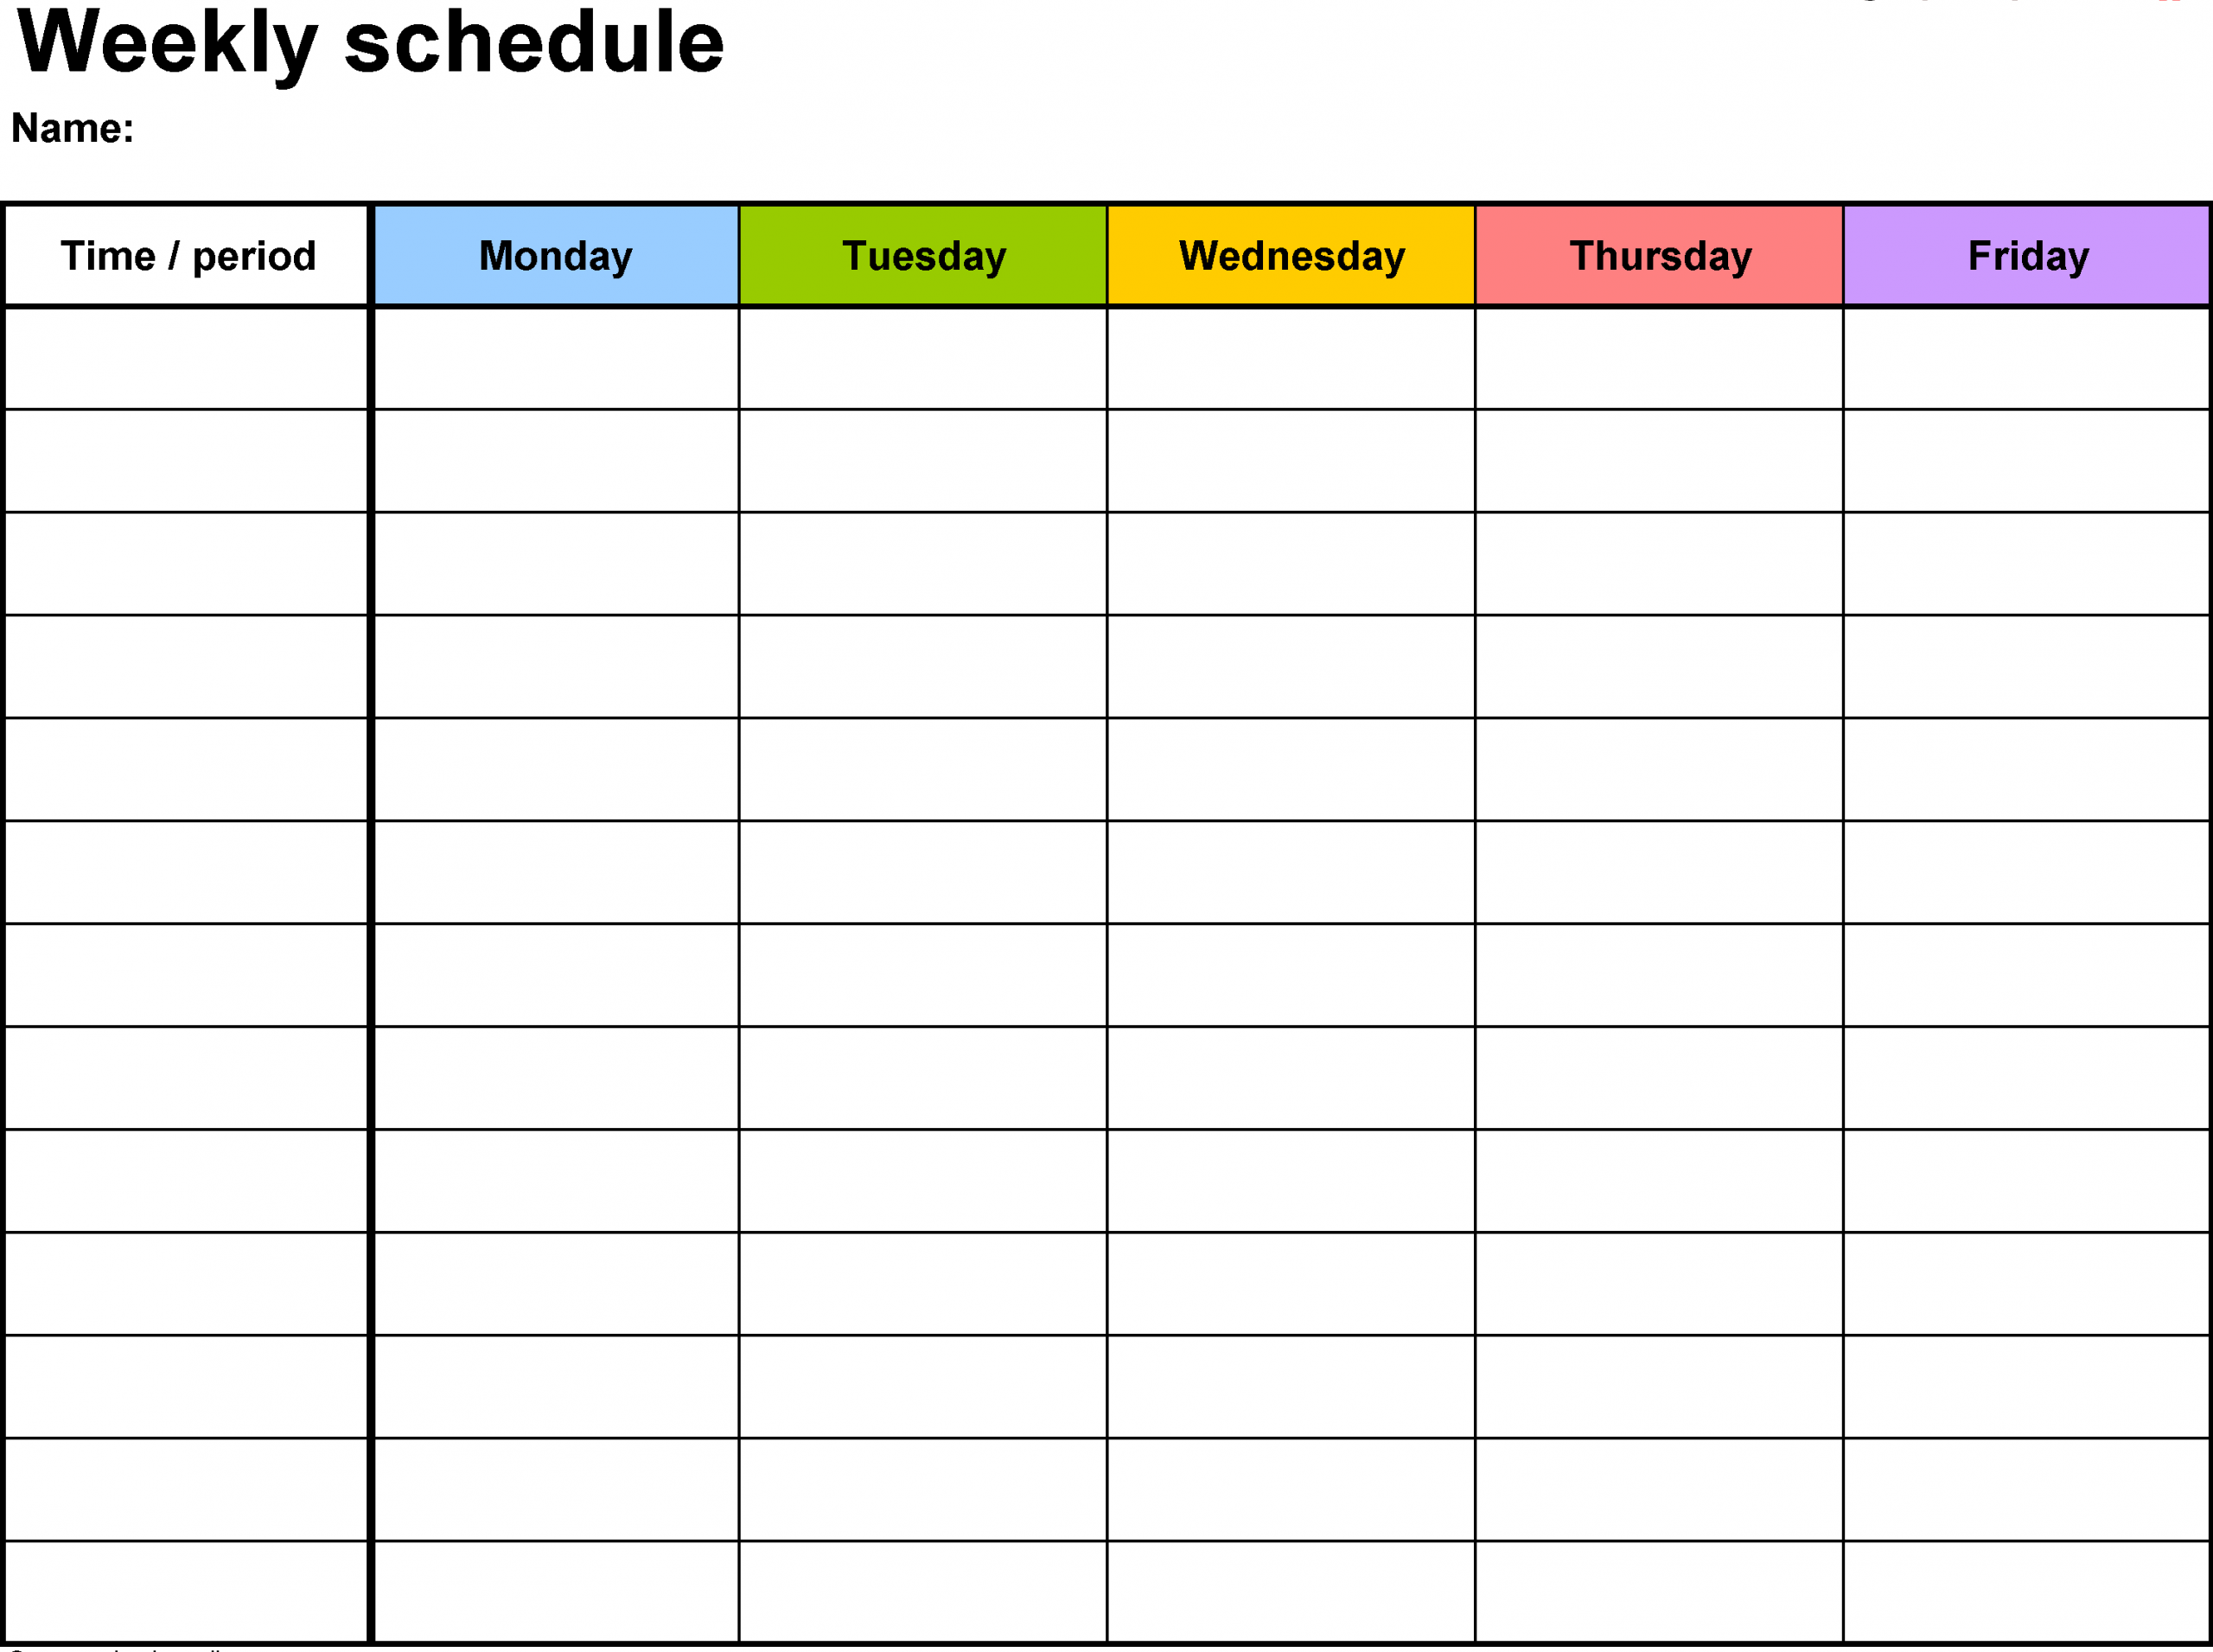 Free Printable Calendar With Time Slots   Calendar Schedule Templates With Hour Time Slots